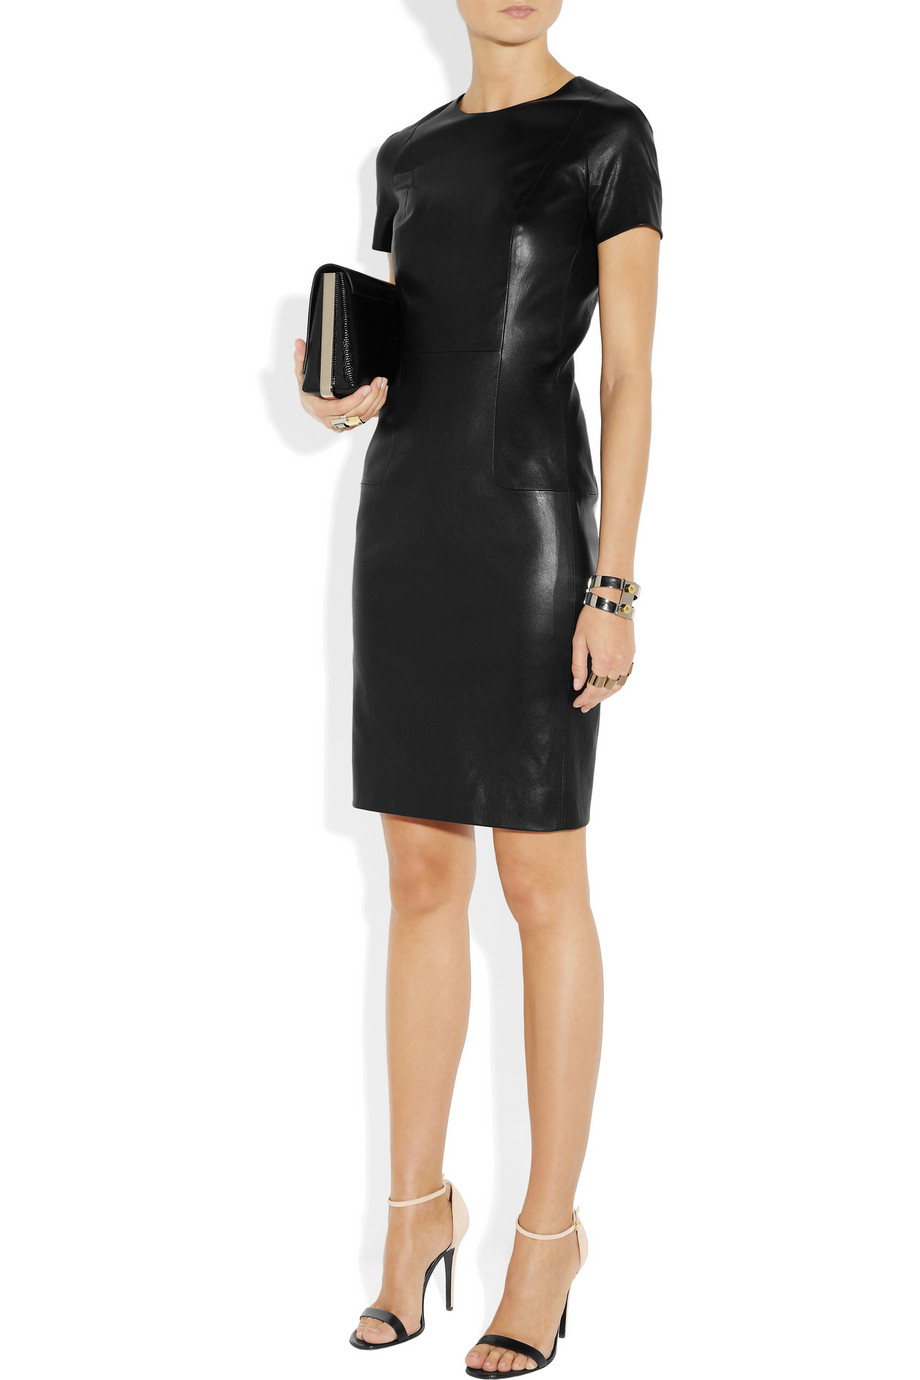 THE ROW Wonlo Paneled Stretch Leather Dress buy HERE